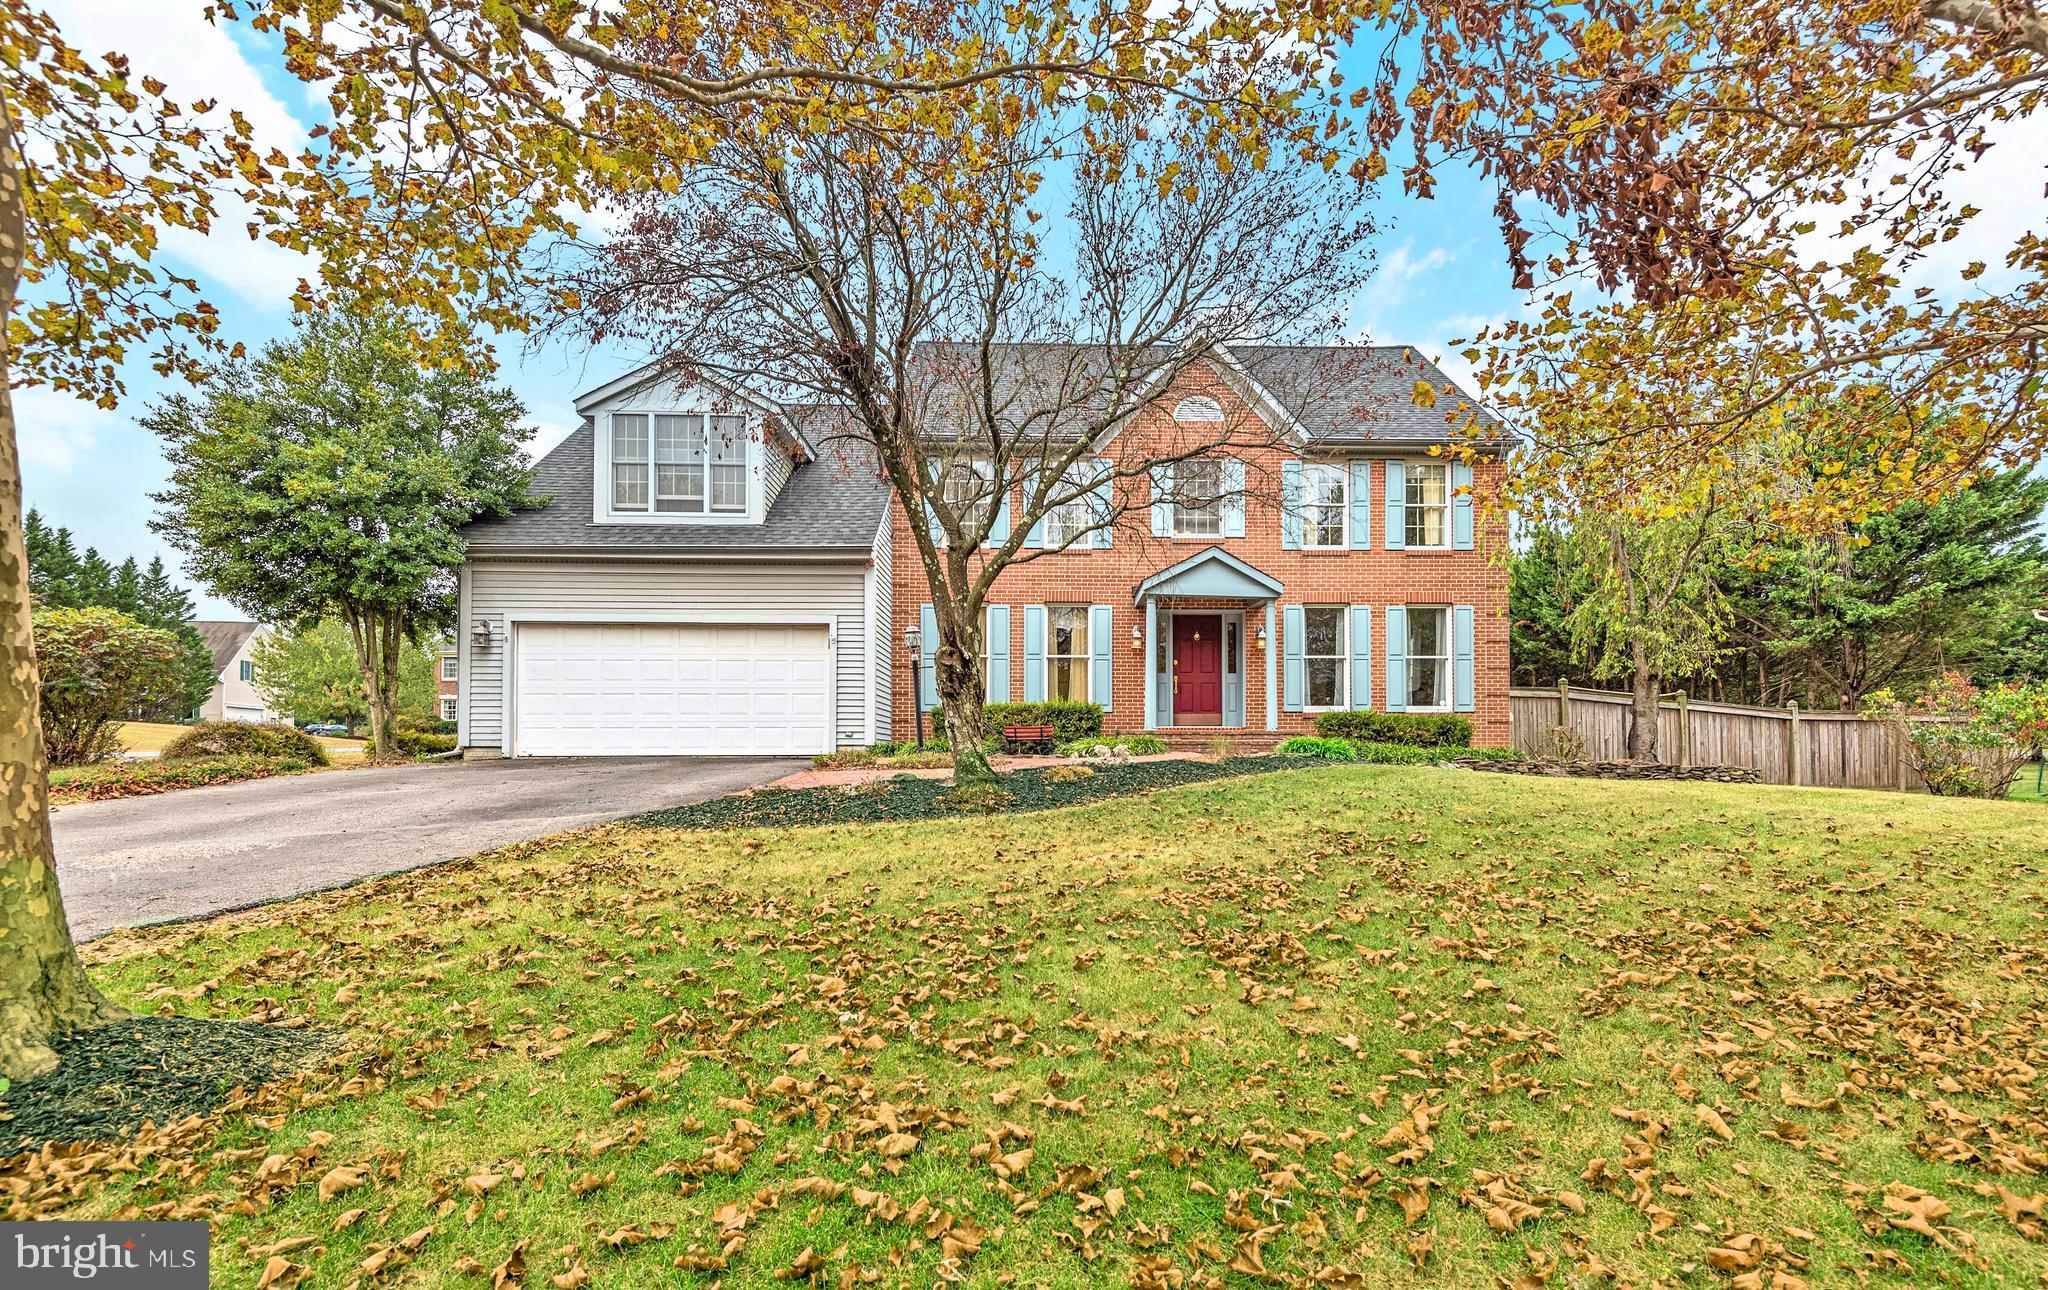 **Huge Price Drop** A rare find in the Rockburn Township, this unique property boasts a stunning built in pool with a deck, patio pavers and fenced in yard that is perfect for hosting friends and family.  The hardwood floors in the foyer, kitchen and family room make for a beautiful entry.  With the coveted open floor plan from the kitchen, to the eat in dining room to the family room, you never feel confined.  Also featuring 5 bedrooms, a 2 car garage, vaulted ceilings and 2 walk in closets in the master bedroom, his and hers vanity in the master bathroom, a finished basement with bedroom, updated bathroom, this home has it all.